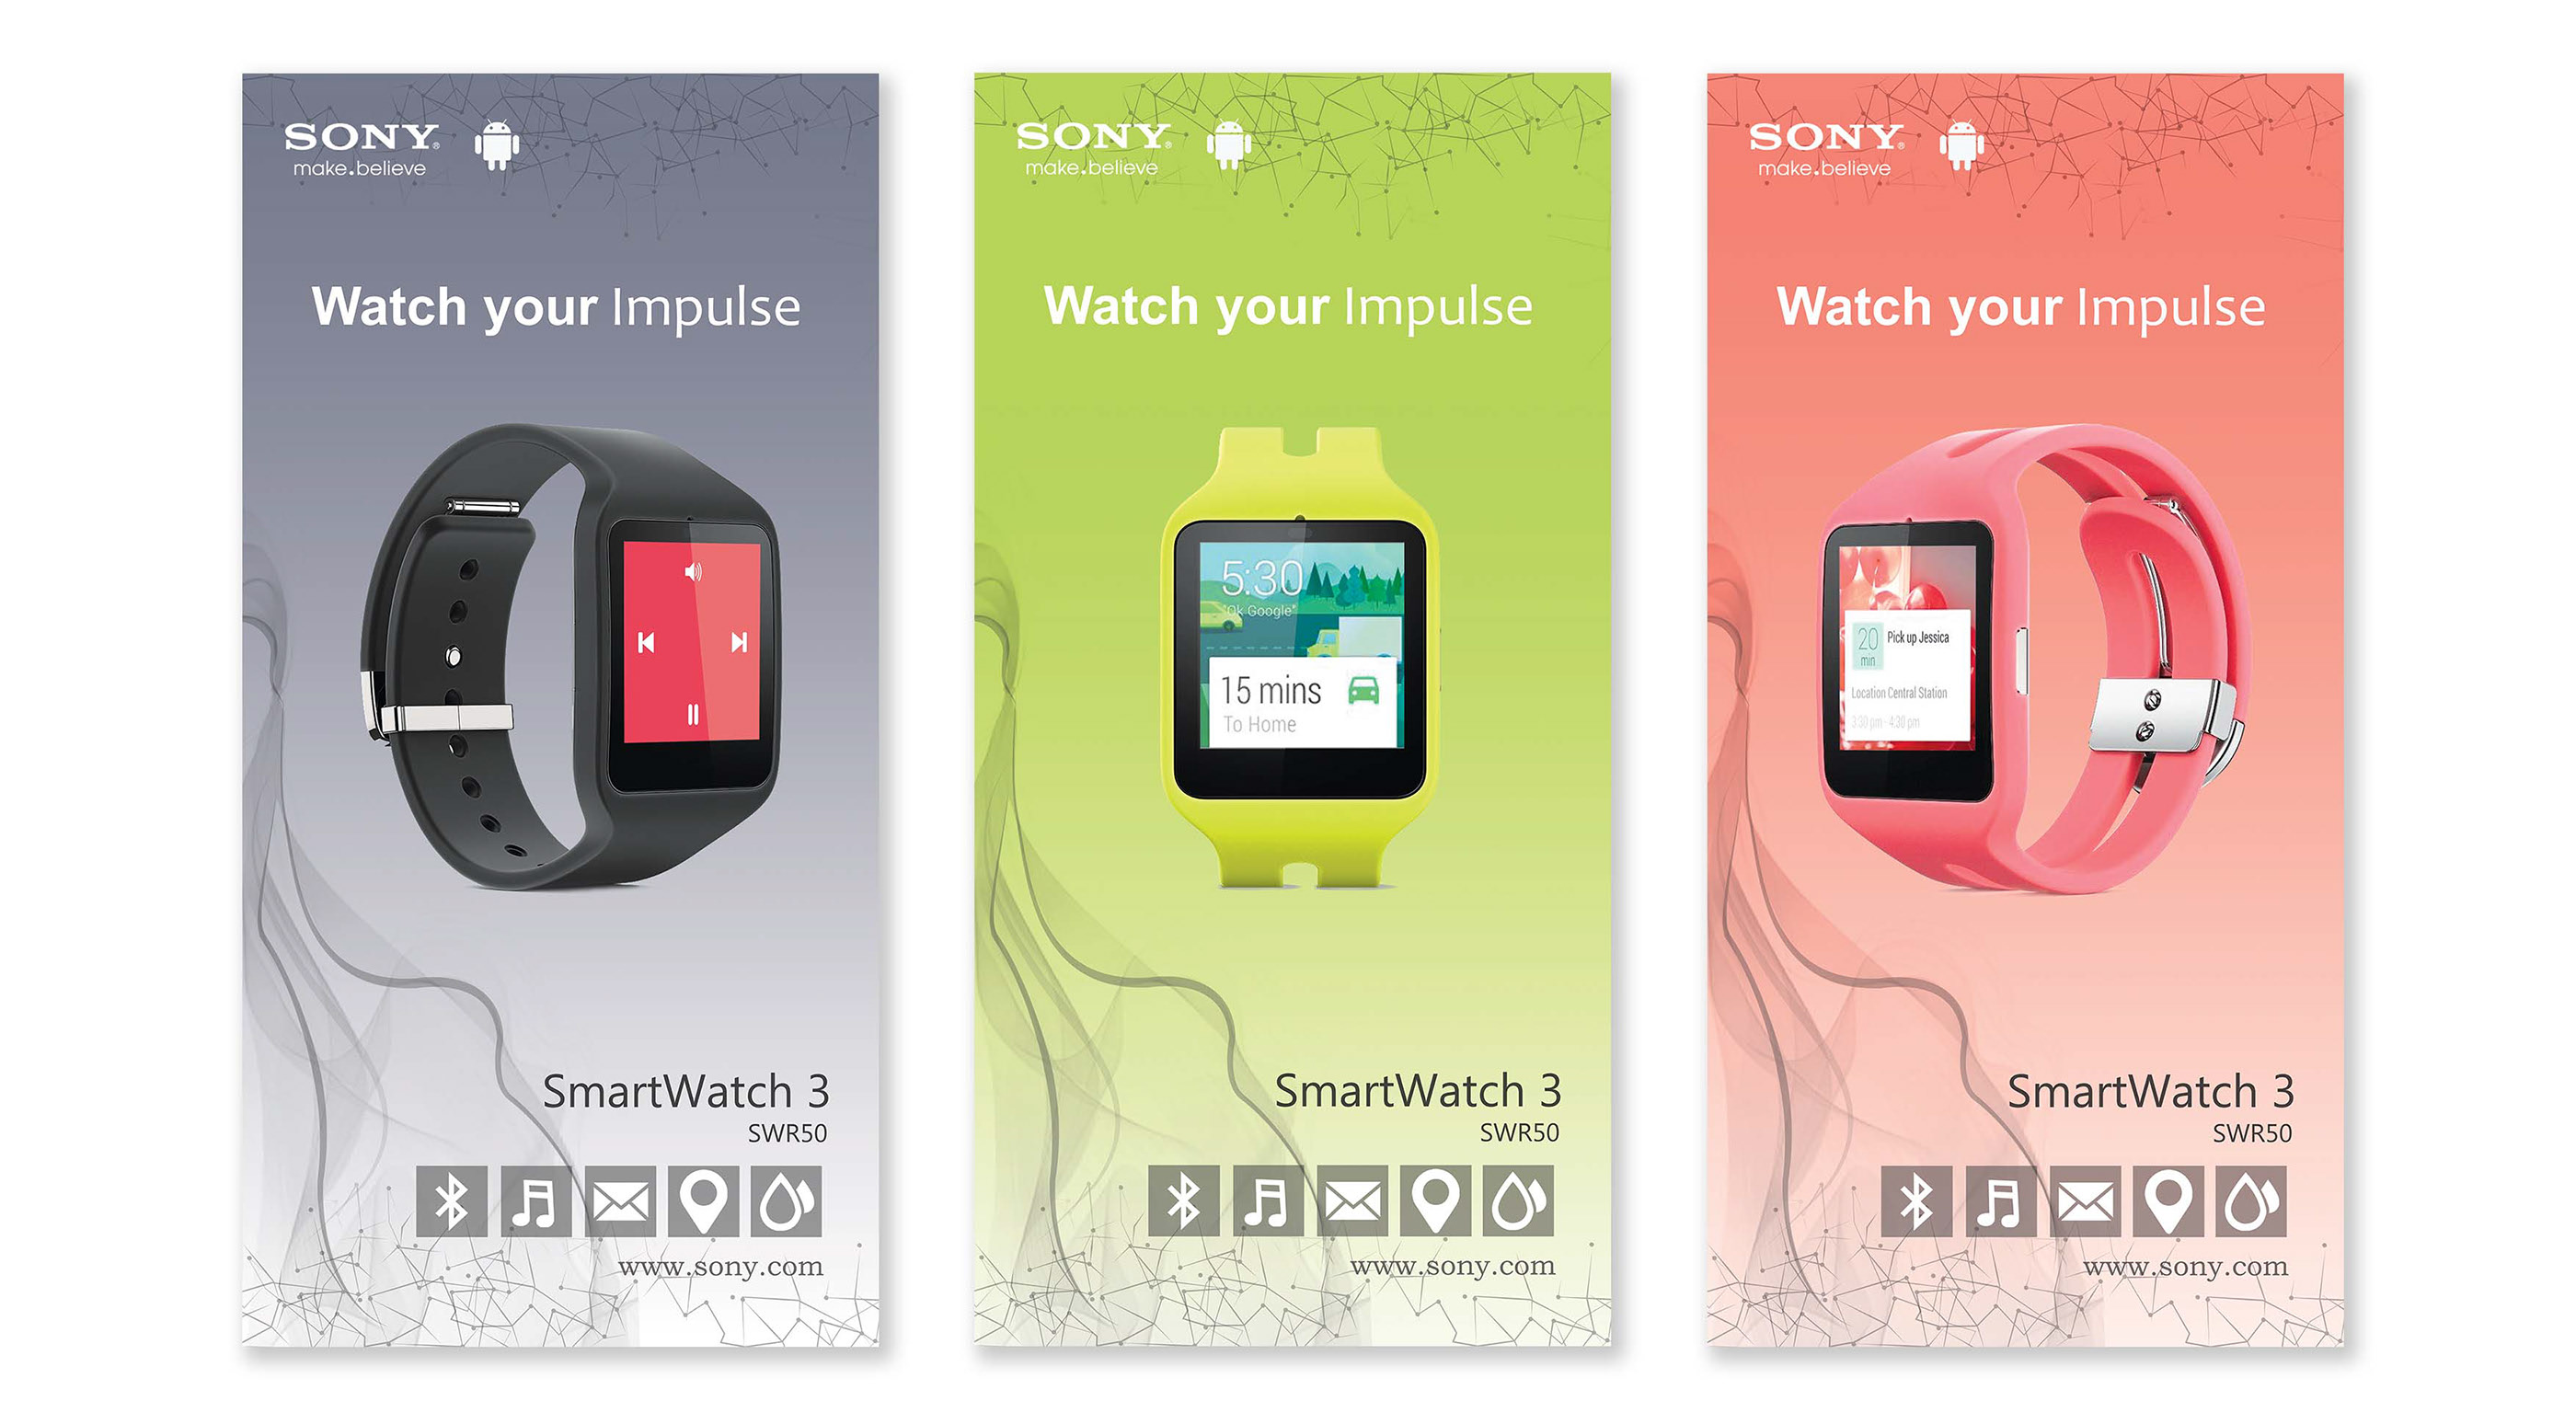 For iphone app smartwatch 3 sony The Most